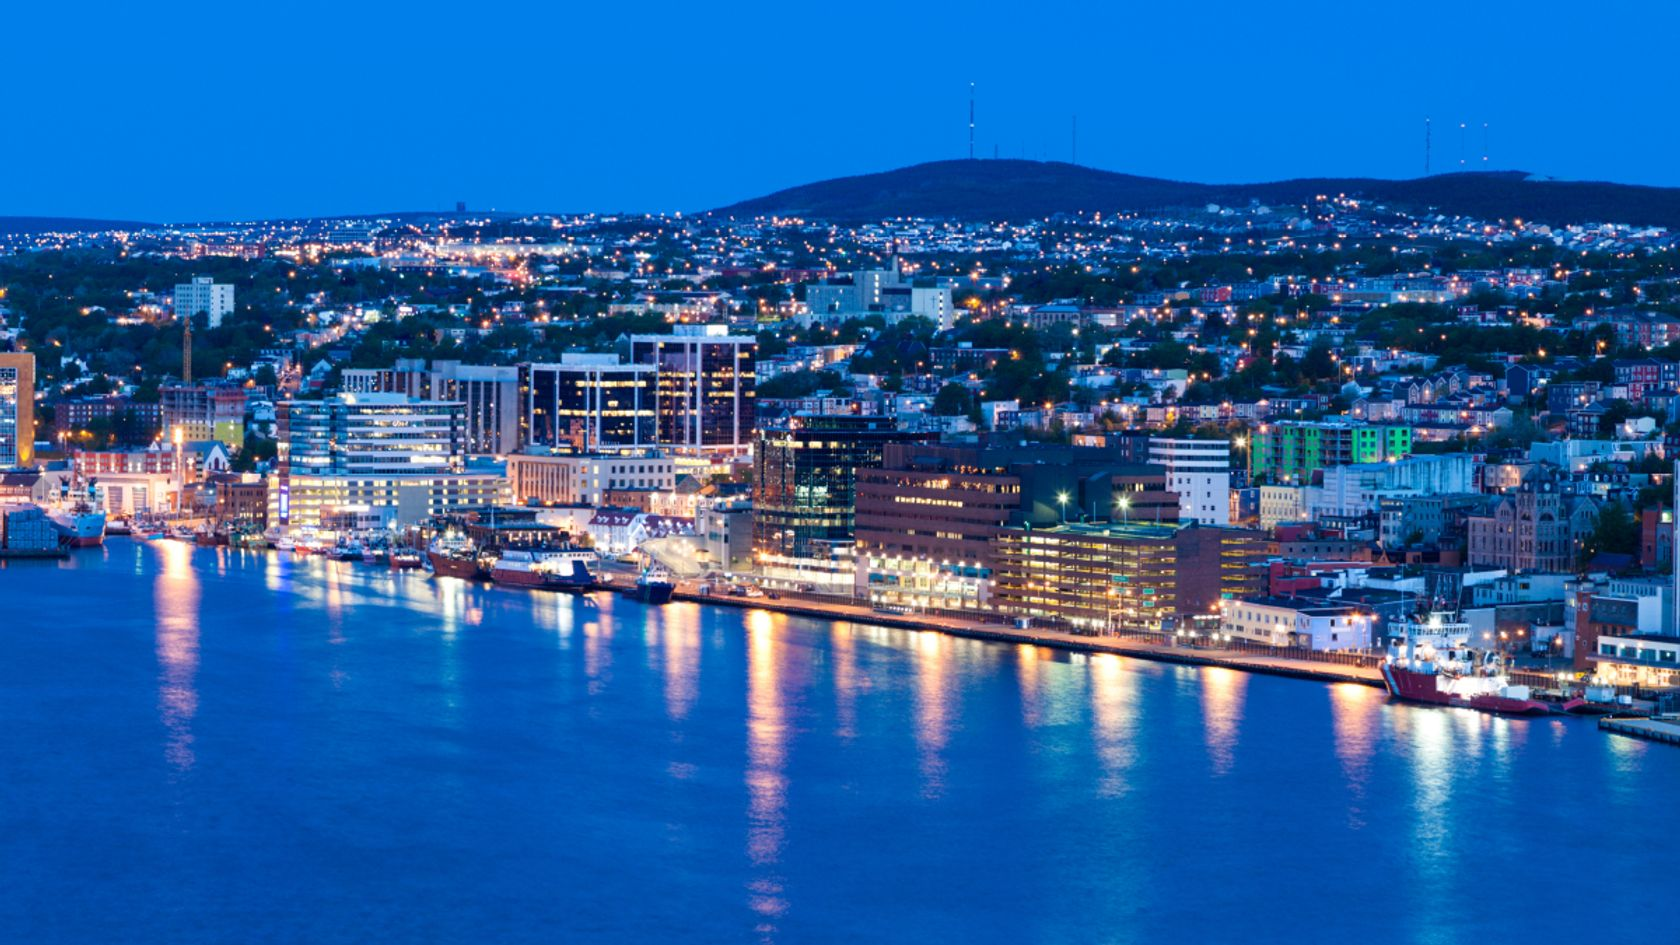 Live the life of your dreams. Find out how to immigrate to Newfoundland & Labrador in 2021 here.